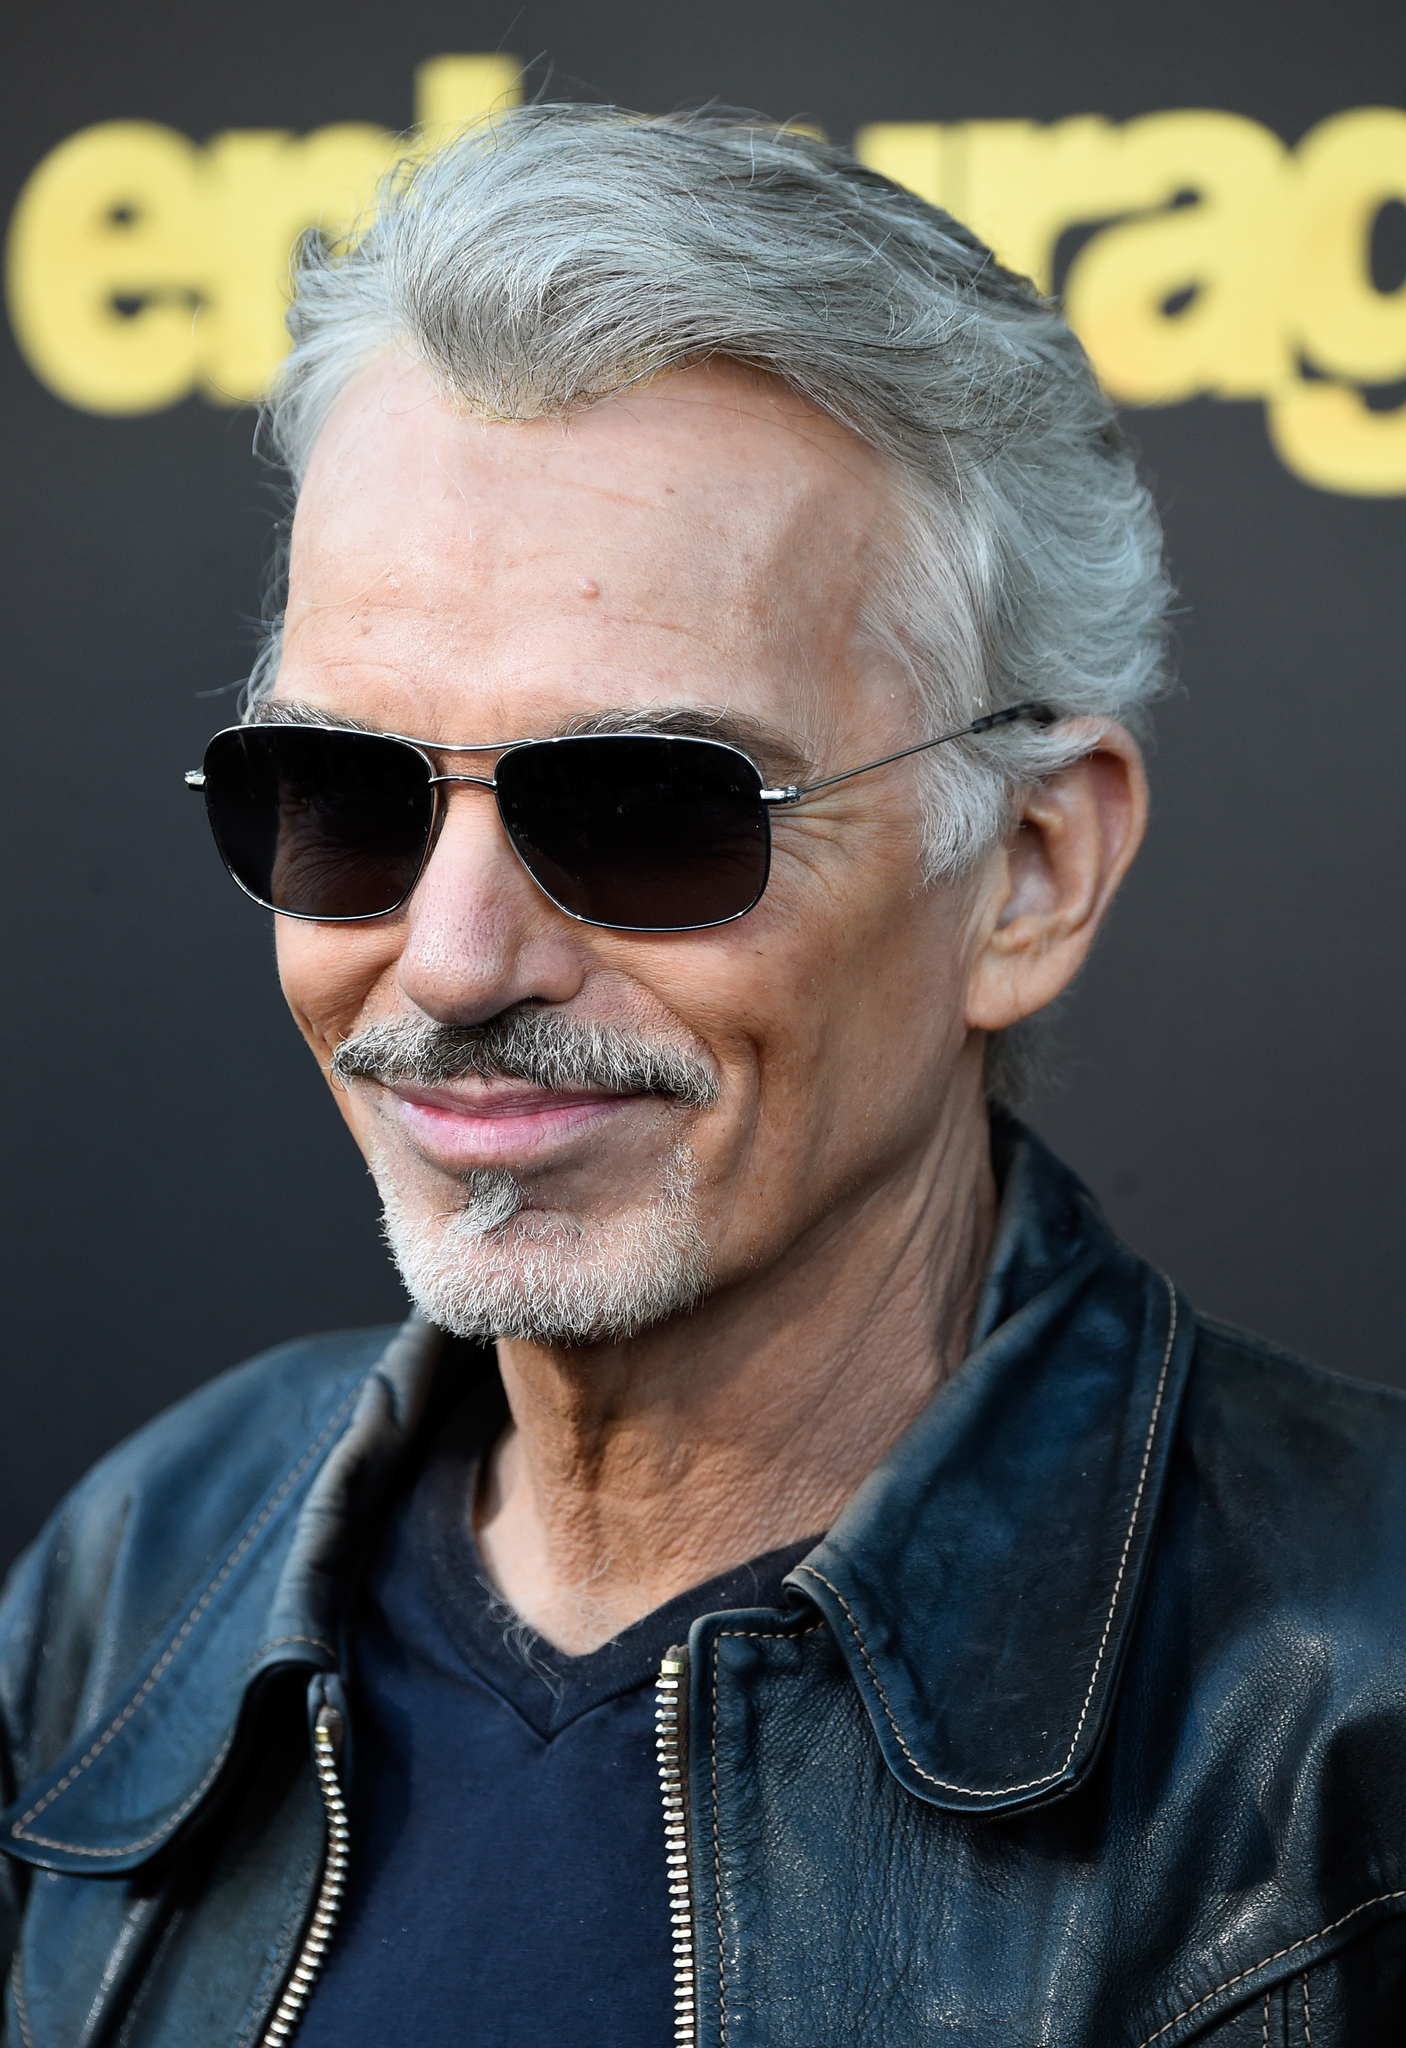 Billy Bob Thornton at an event for Entourage (2015)